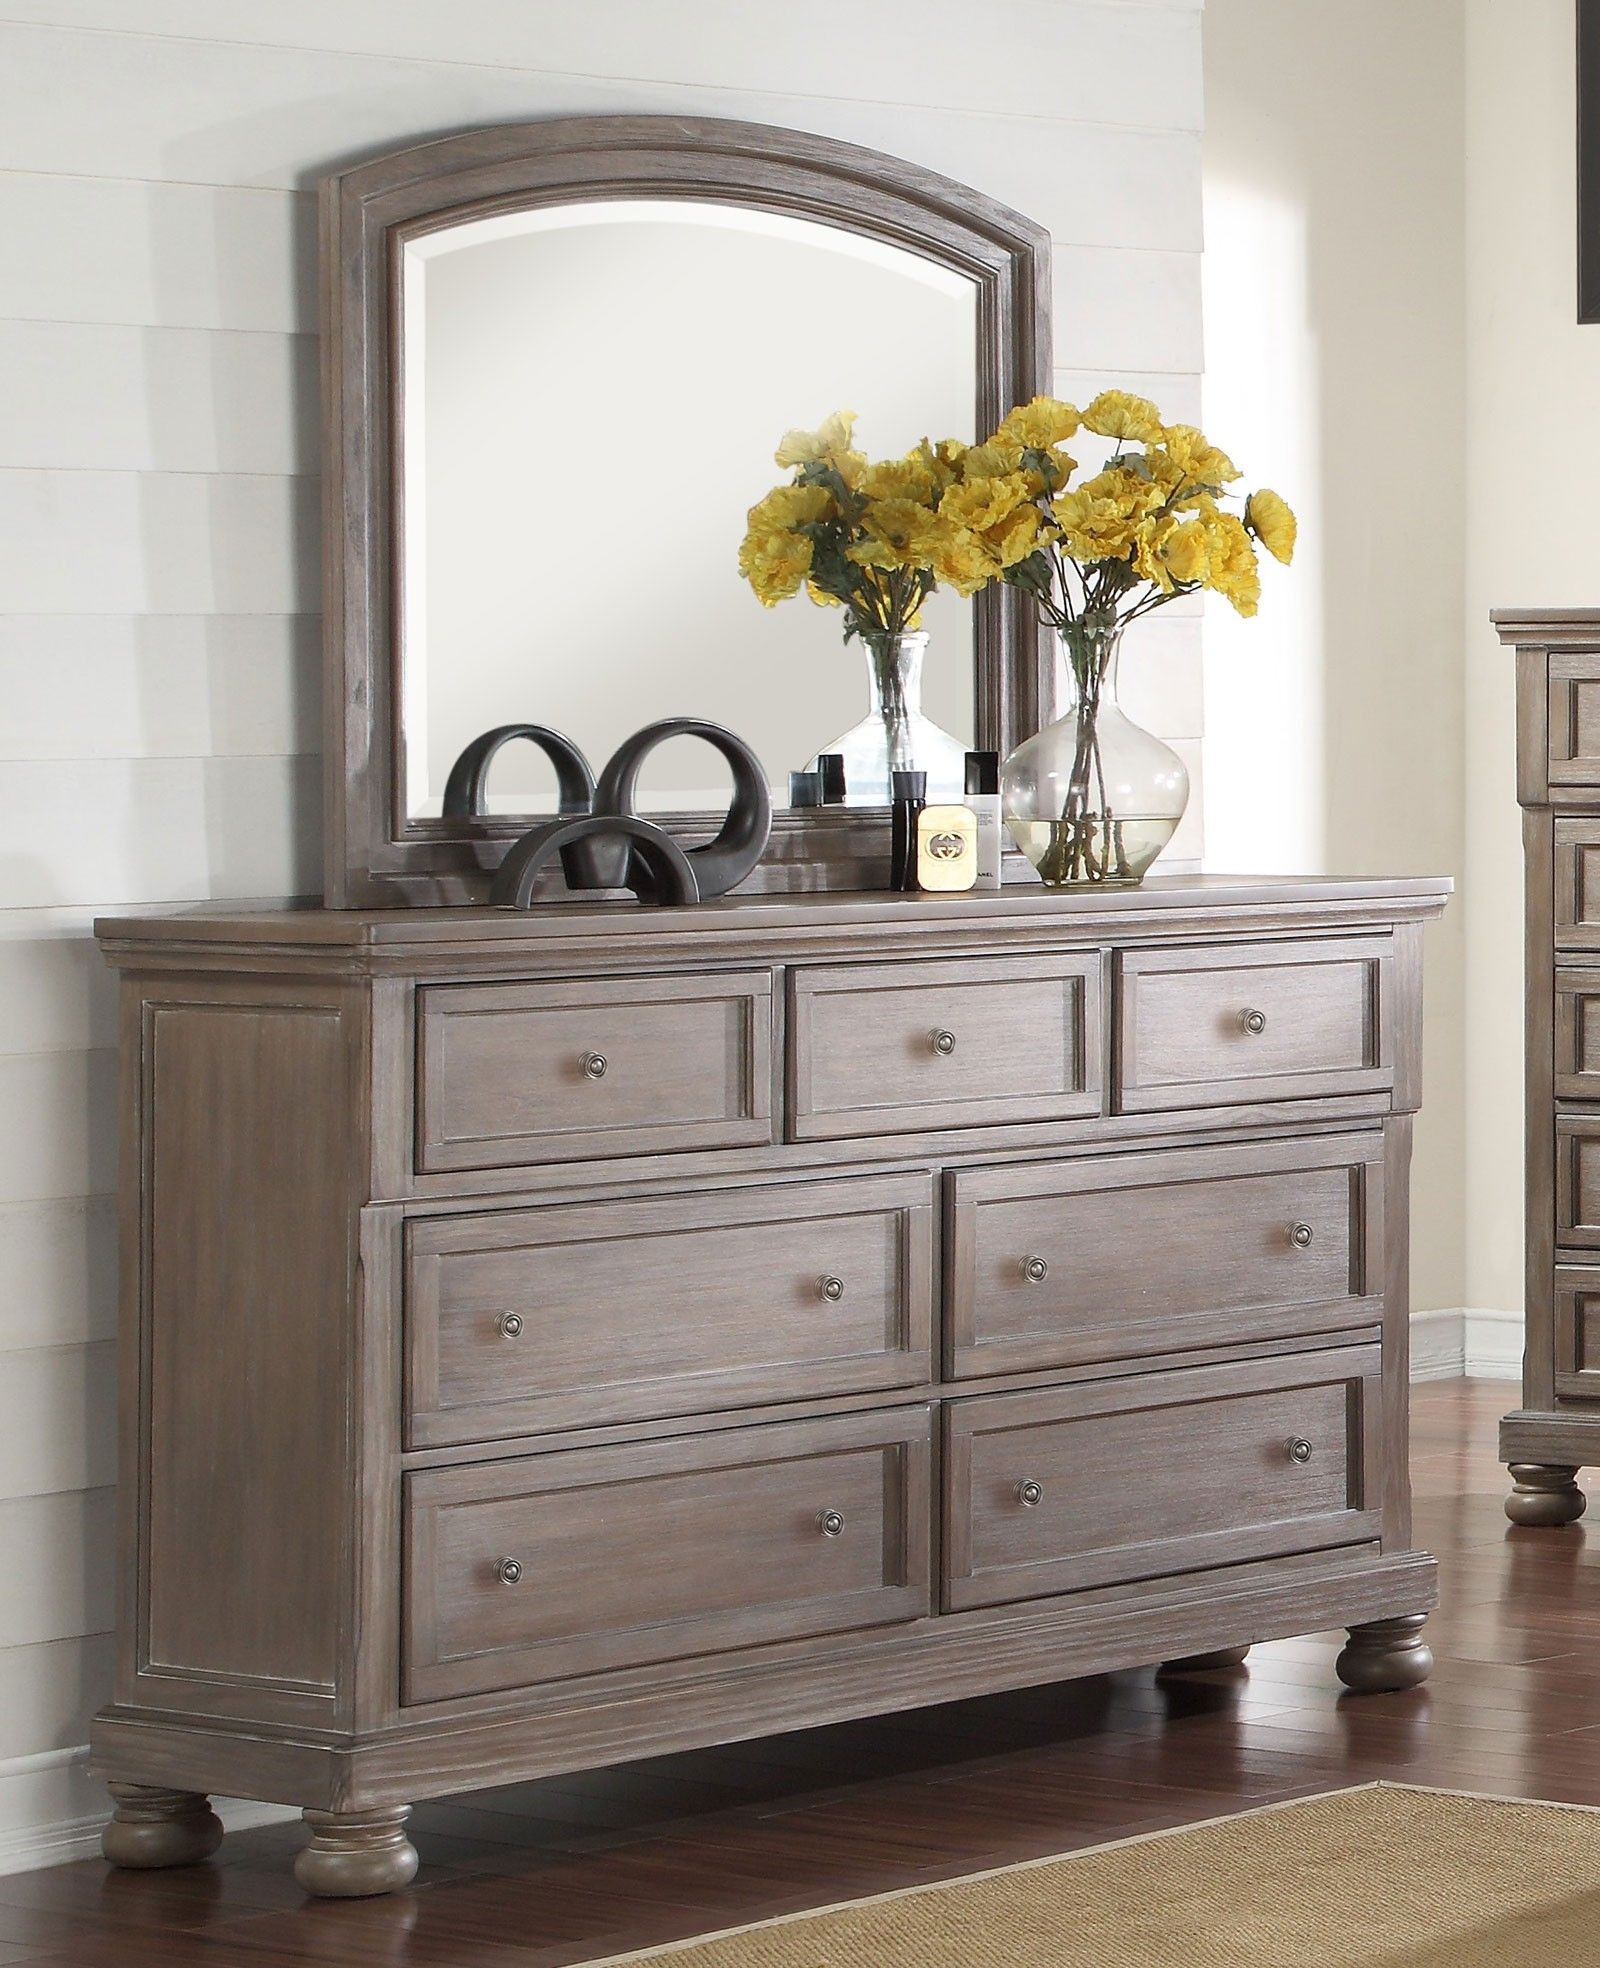 Pewter Bedroom Furniture New Classic Furniture Allegra Dresser In Pewter B2159 050